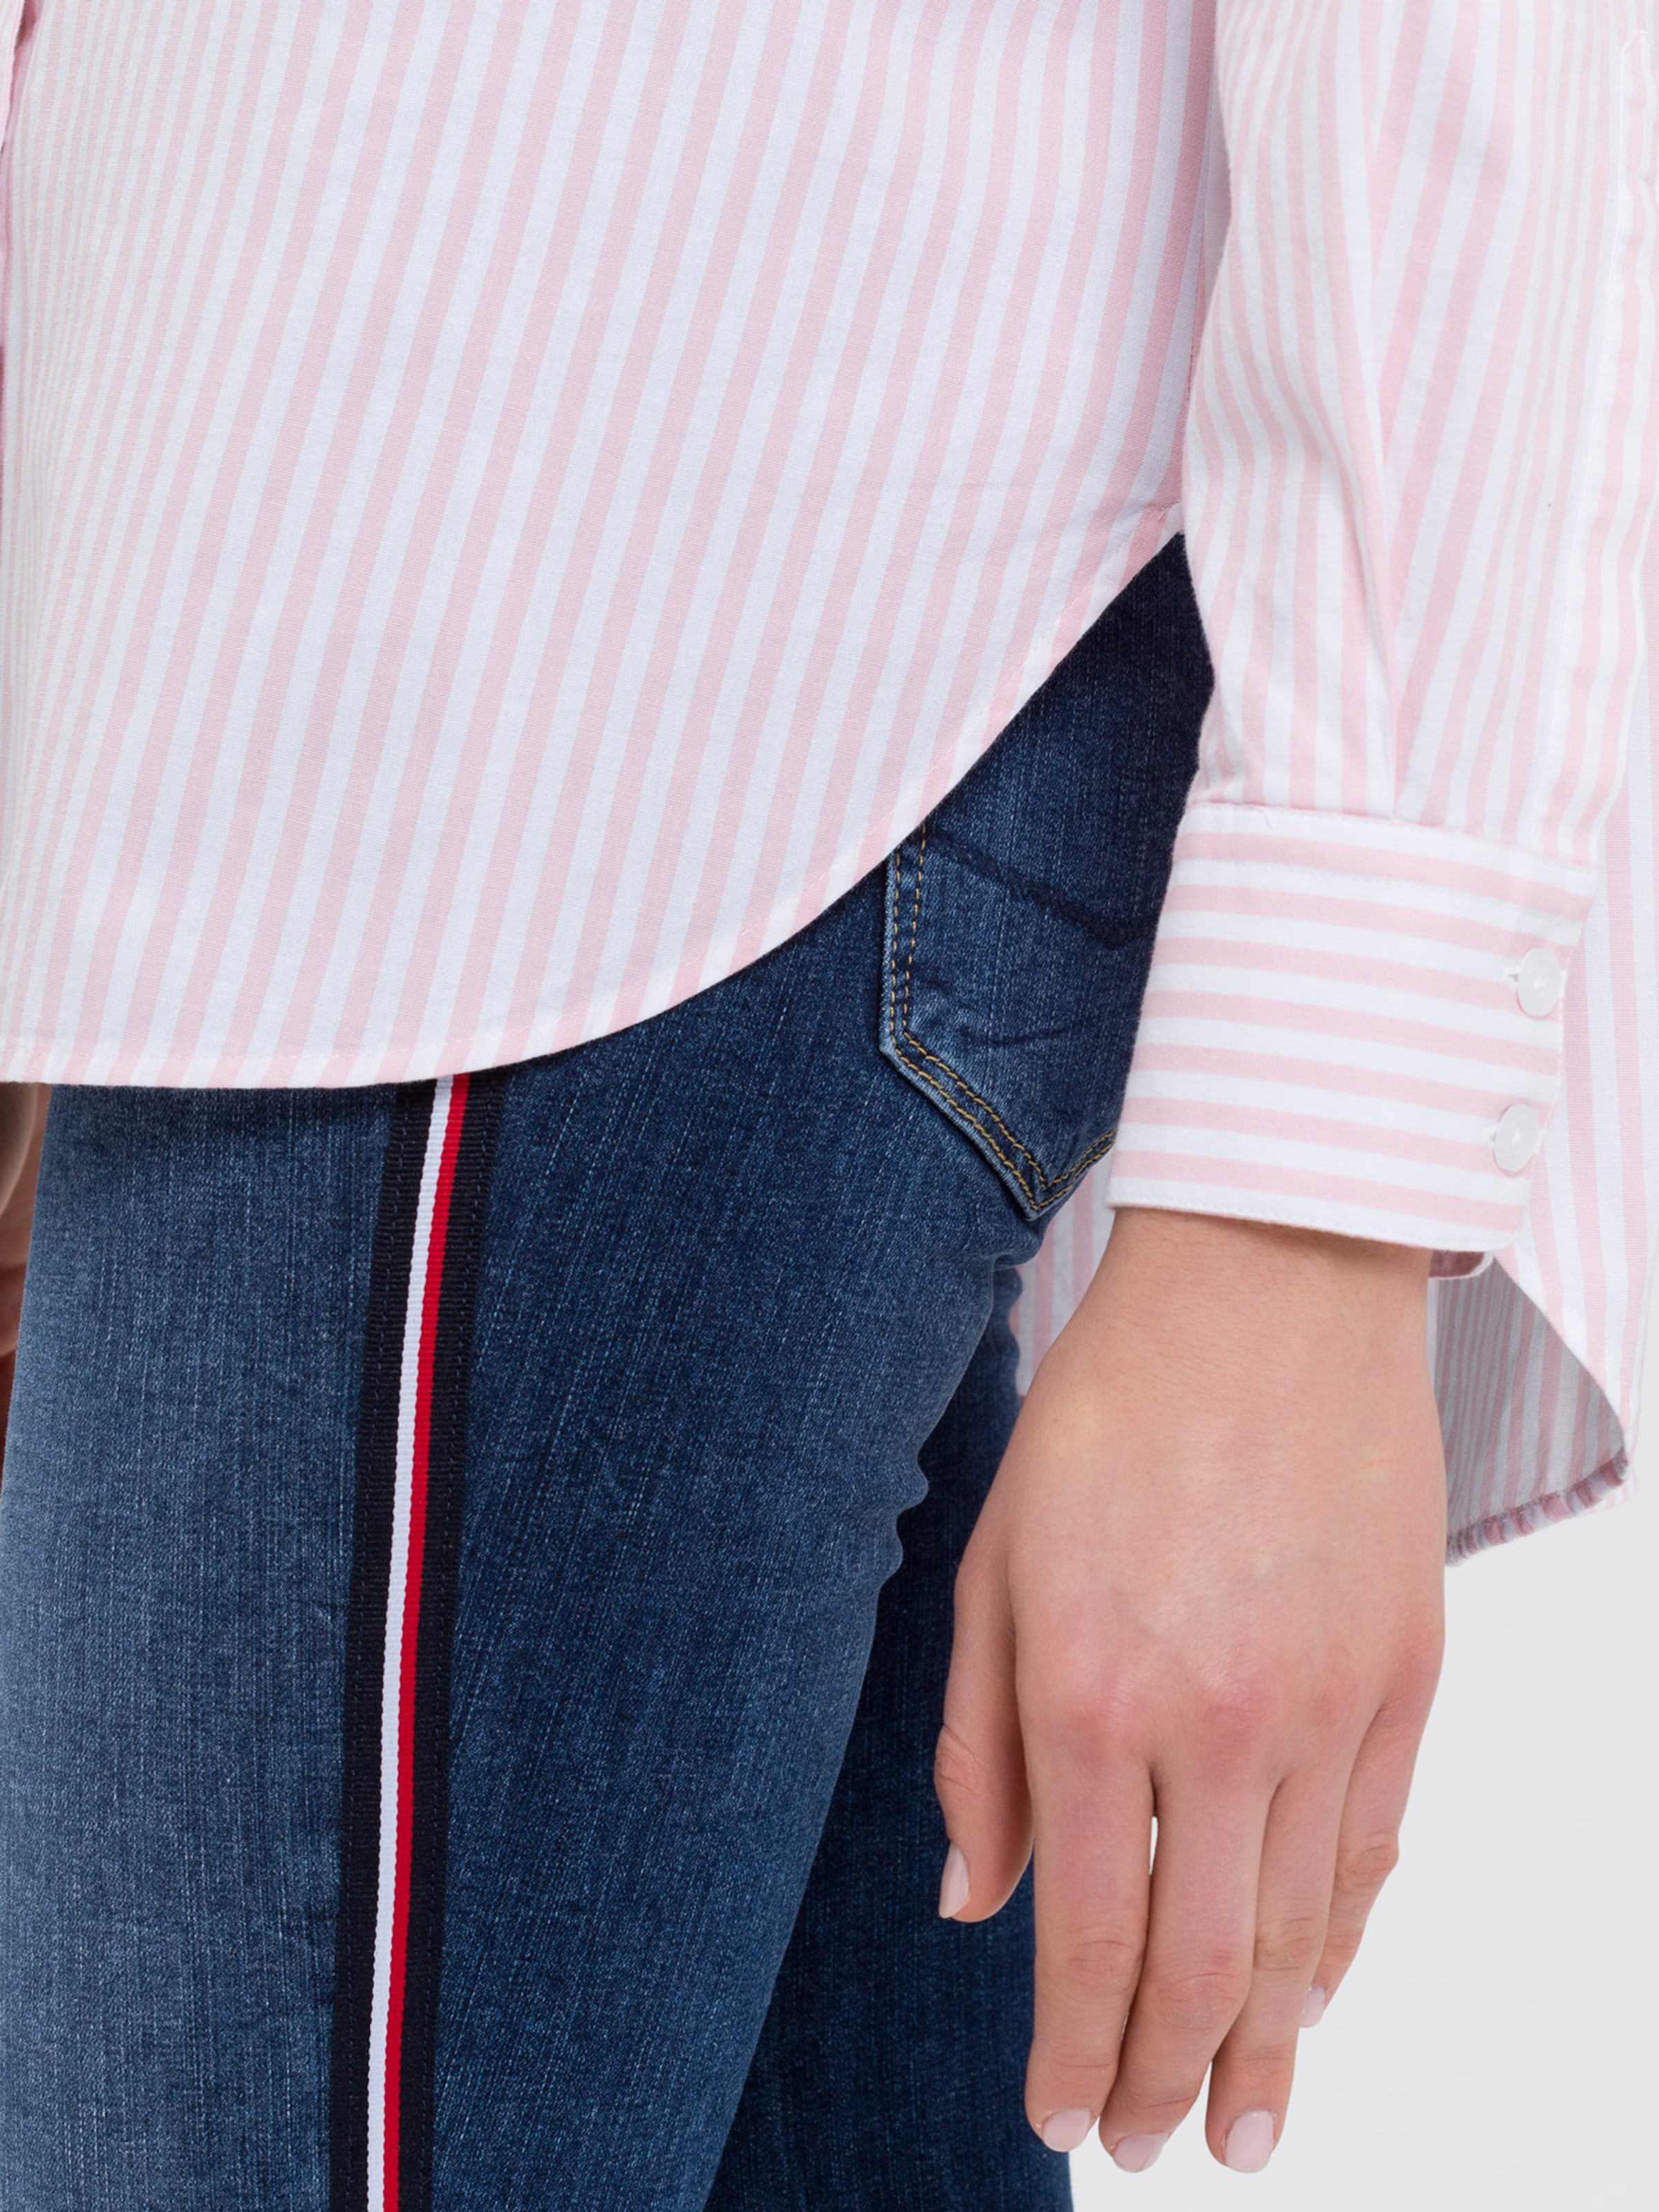 Jeans In In Bluse Cross RosaWeiß Jeans Jeans Bluse Cross Cross Bluse RosaWeiß bfYyv76gI